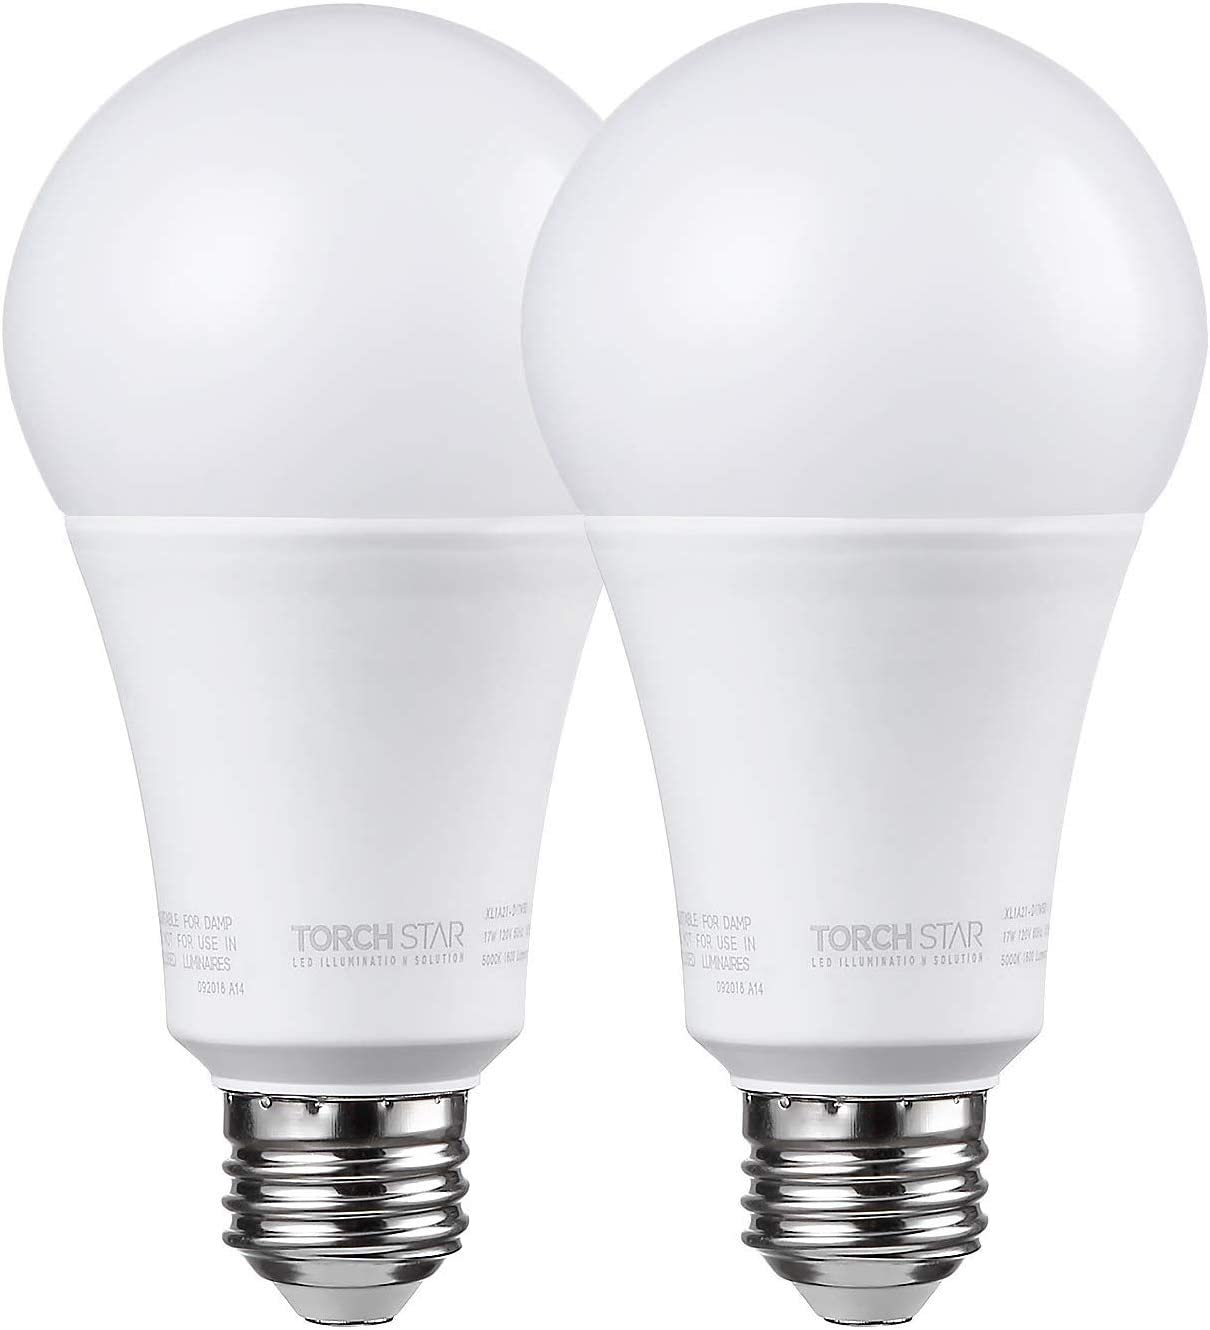 TORCHSTAR Dimmable A21 LED Light Bulb, 17W (100W Equivalent), 1600lm, 5000K Daylight, CRI 90+, UL & Energy Star Listed, E26 Base for Desk Lamp, Floor Lamp, Ceiling Fan, 3 Year Warranty, Pack of 2